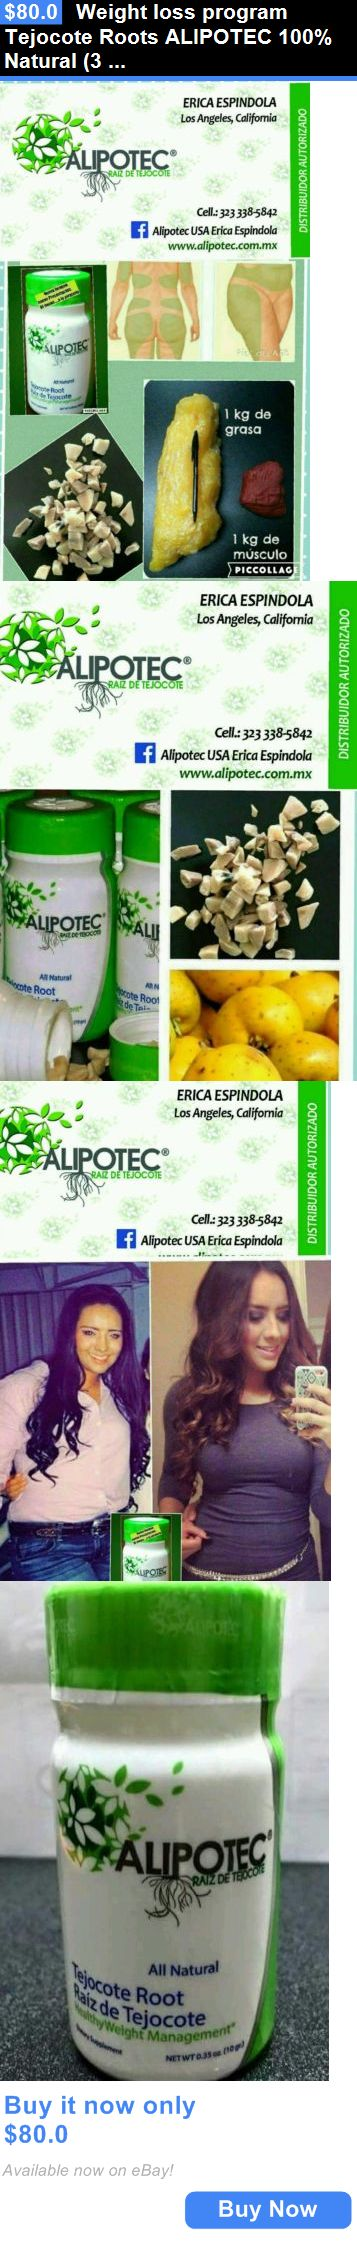 Other Weight Management: Weight Loss Program Tejocote Roots Alipotec 100% Natural (3 Months) BUY IT NOW ONLY: $80.0